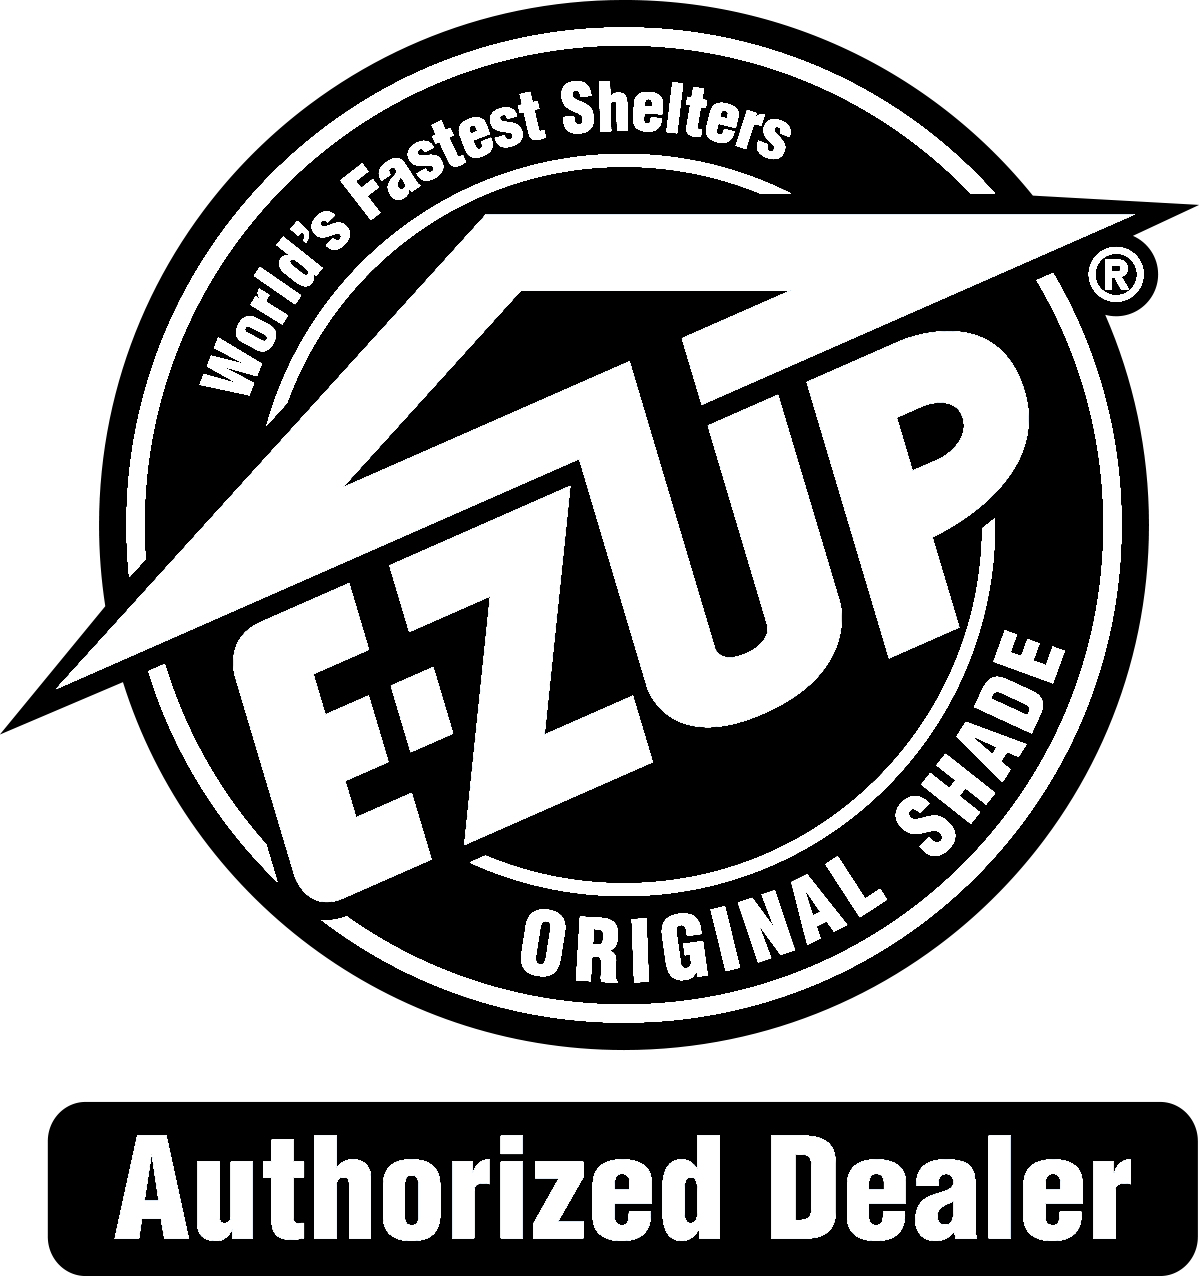 E-ZUP Authorized Dealer Logo Black